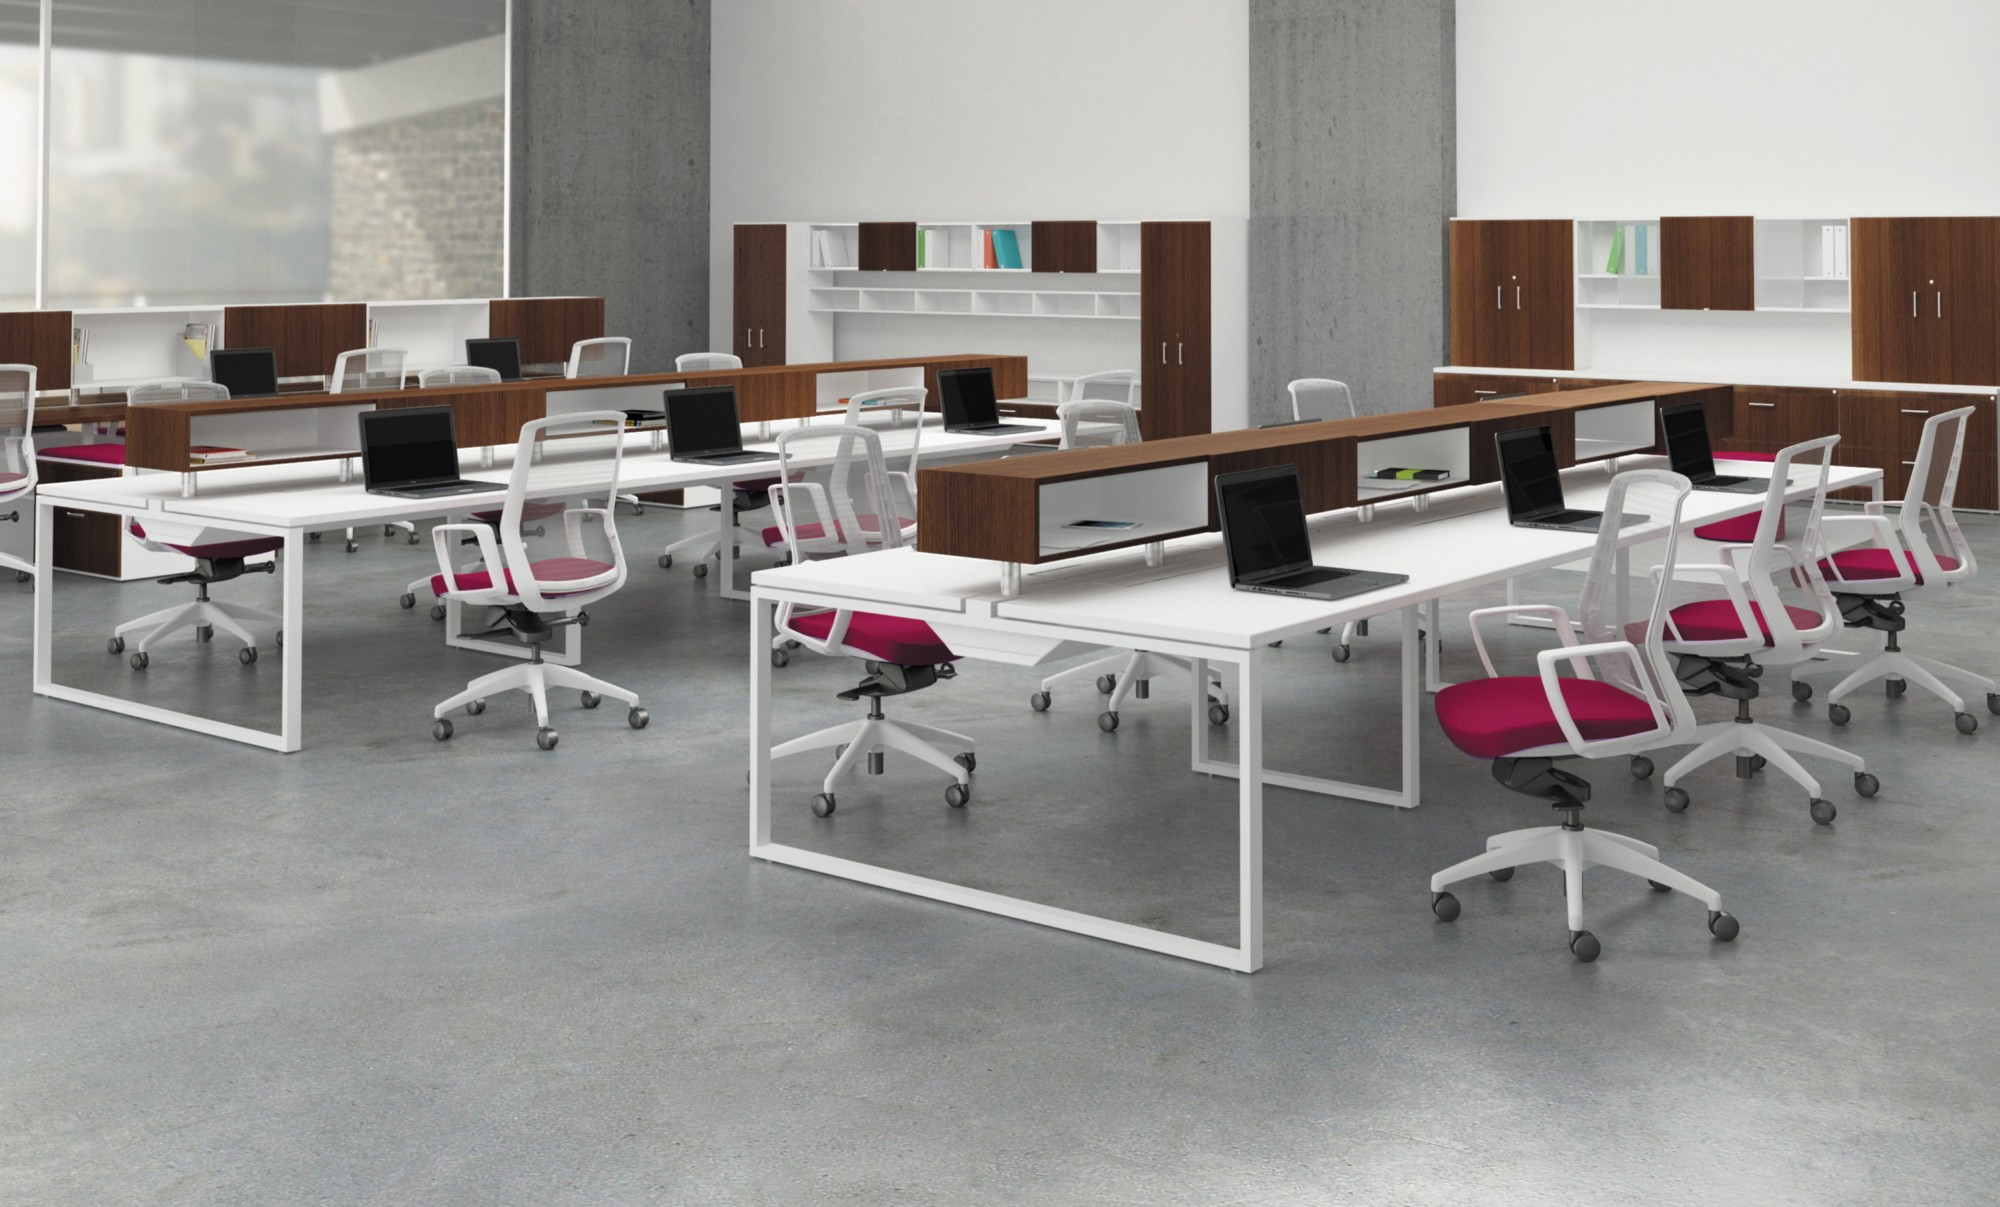 Muebles para oficina tremain daniela boone tanahara medium for Muebles oficina 3ds max